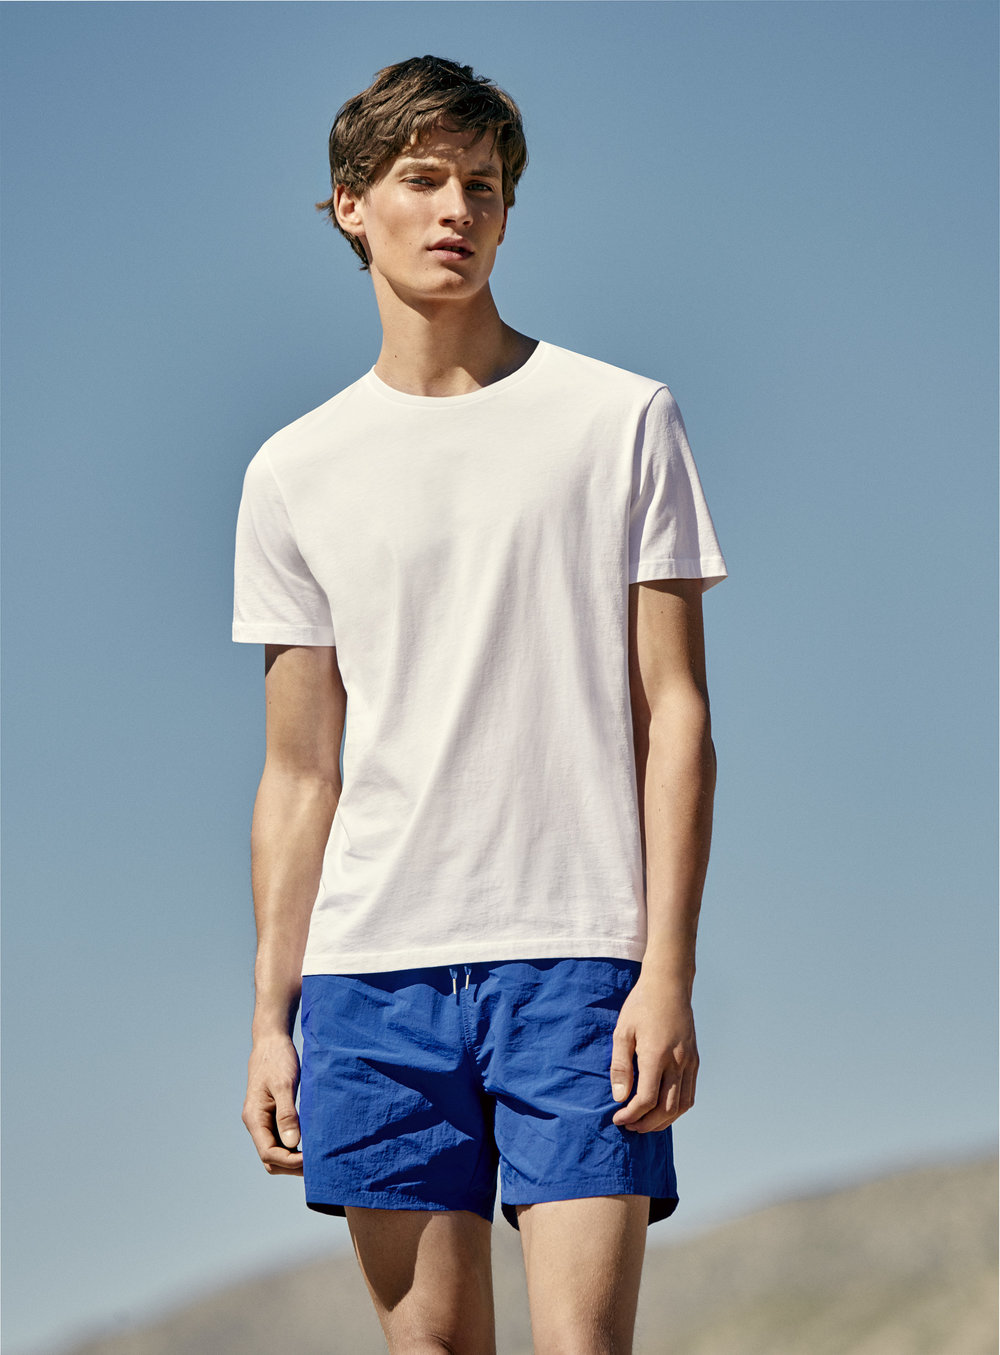 Oversized Cotton t-shirt (25€) + Lightweight swim shorts (45€)